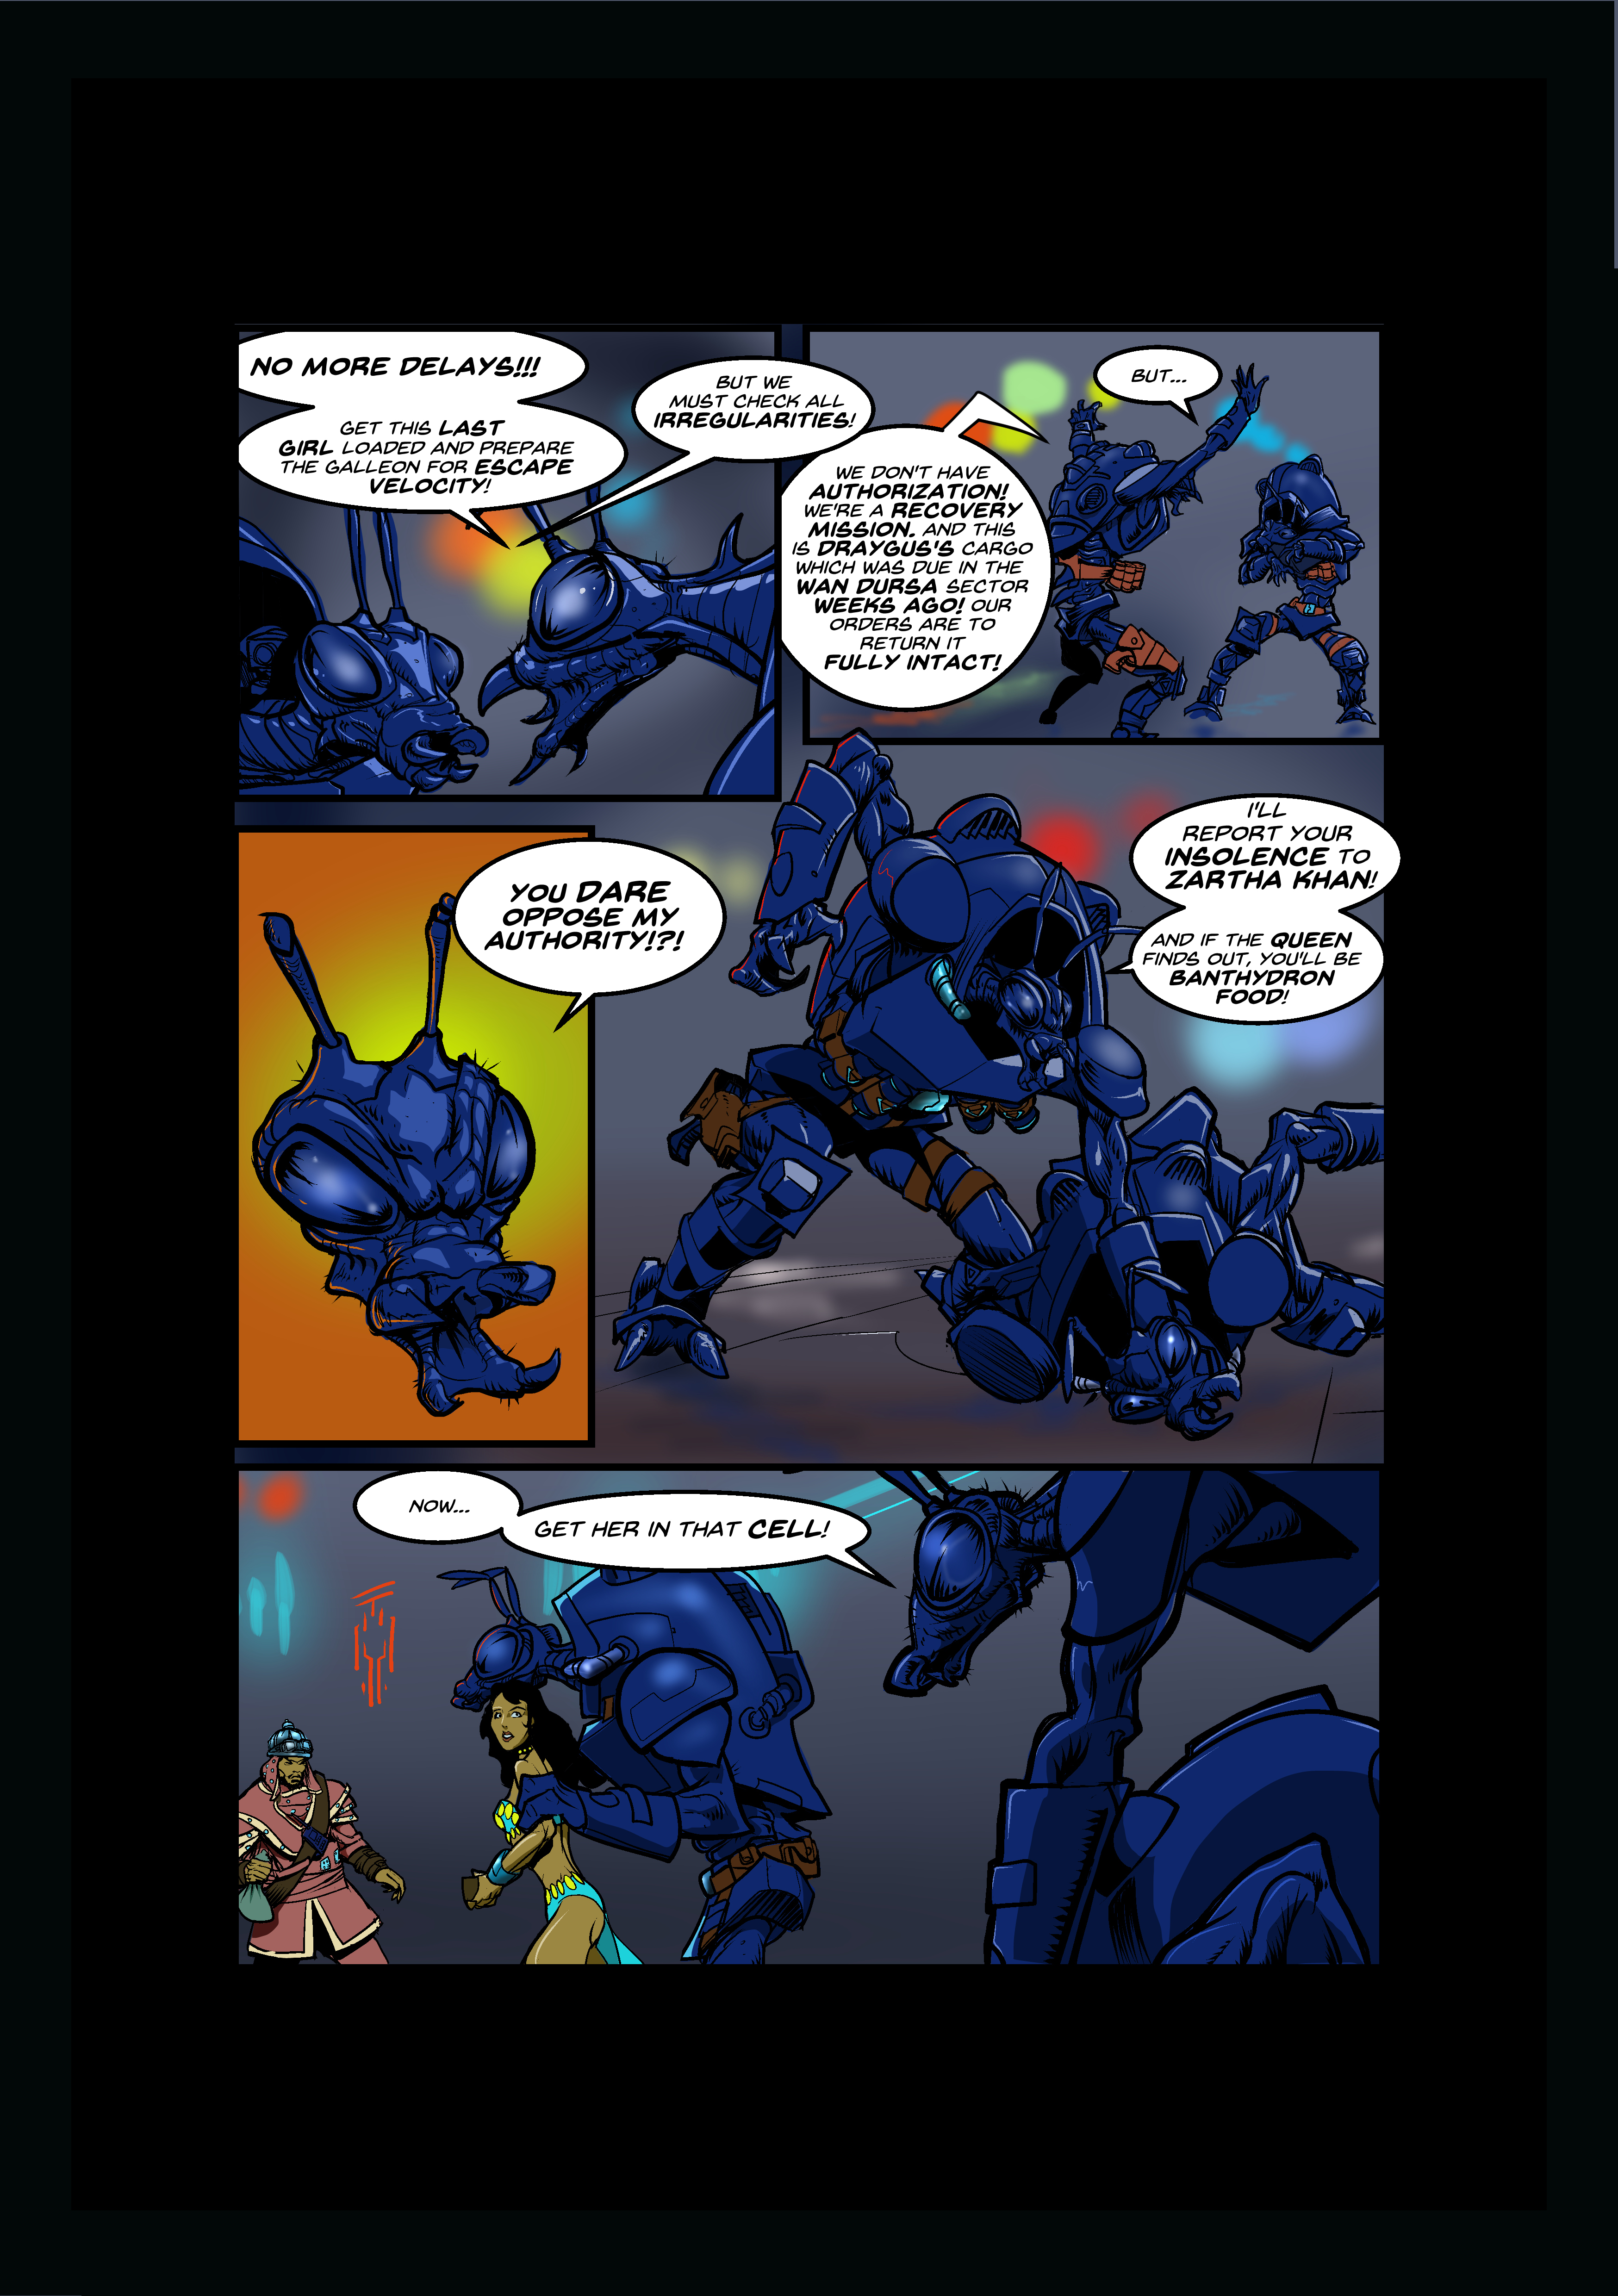 Prince of the Astral Kingdom chapter 2 pg 41